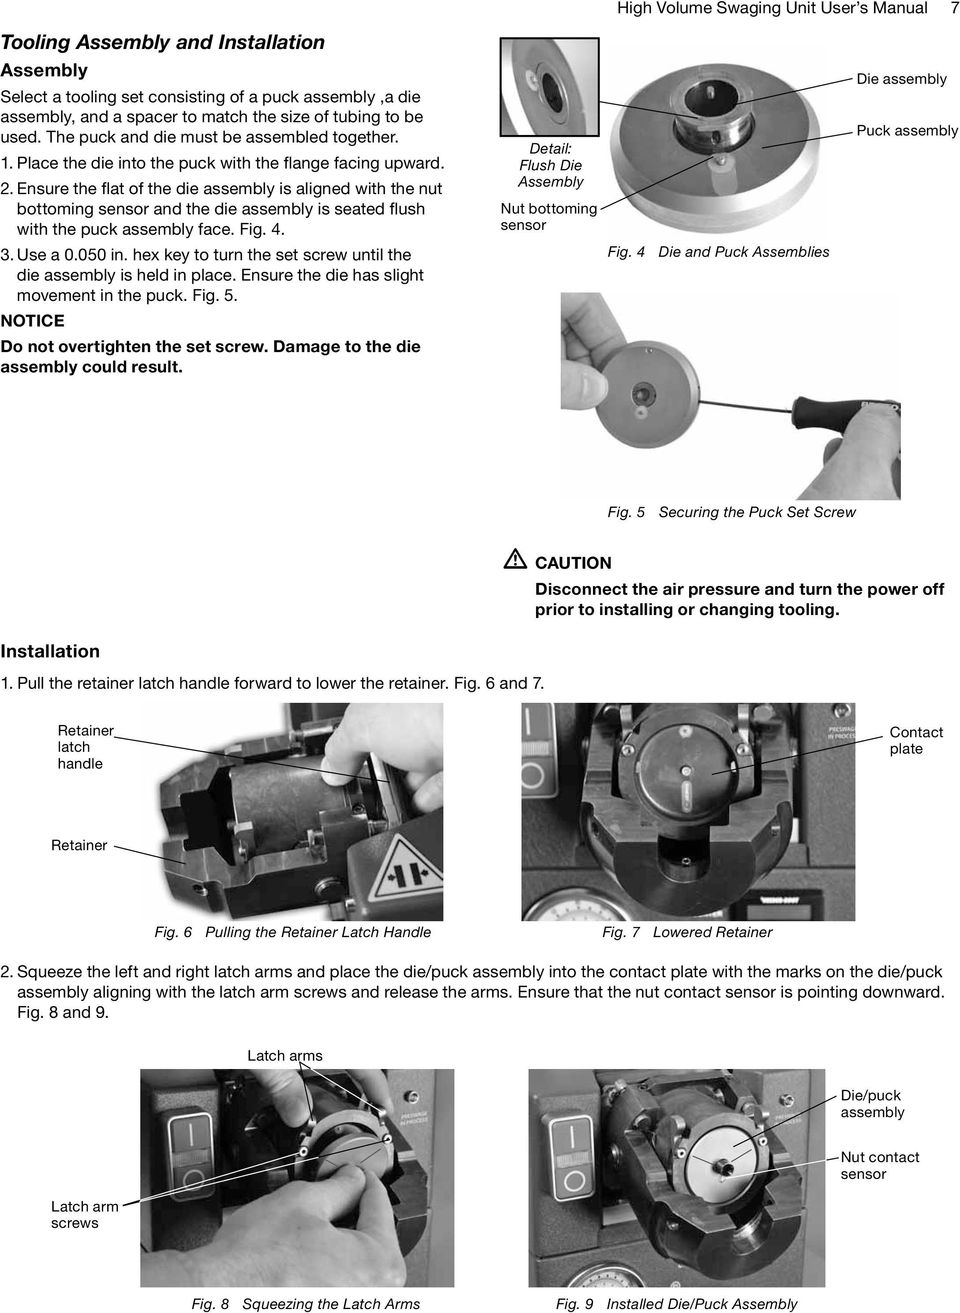 Ensure the flat of the die assembly is aligned with the nut bottoming sensor and the die assembly is seated flush with the puck assembly face. Fig. 4. 3. Use a 0.050 in.